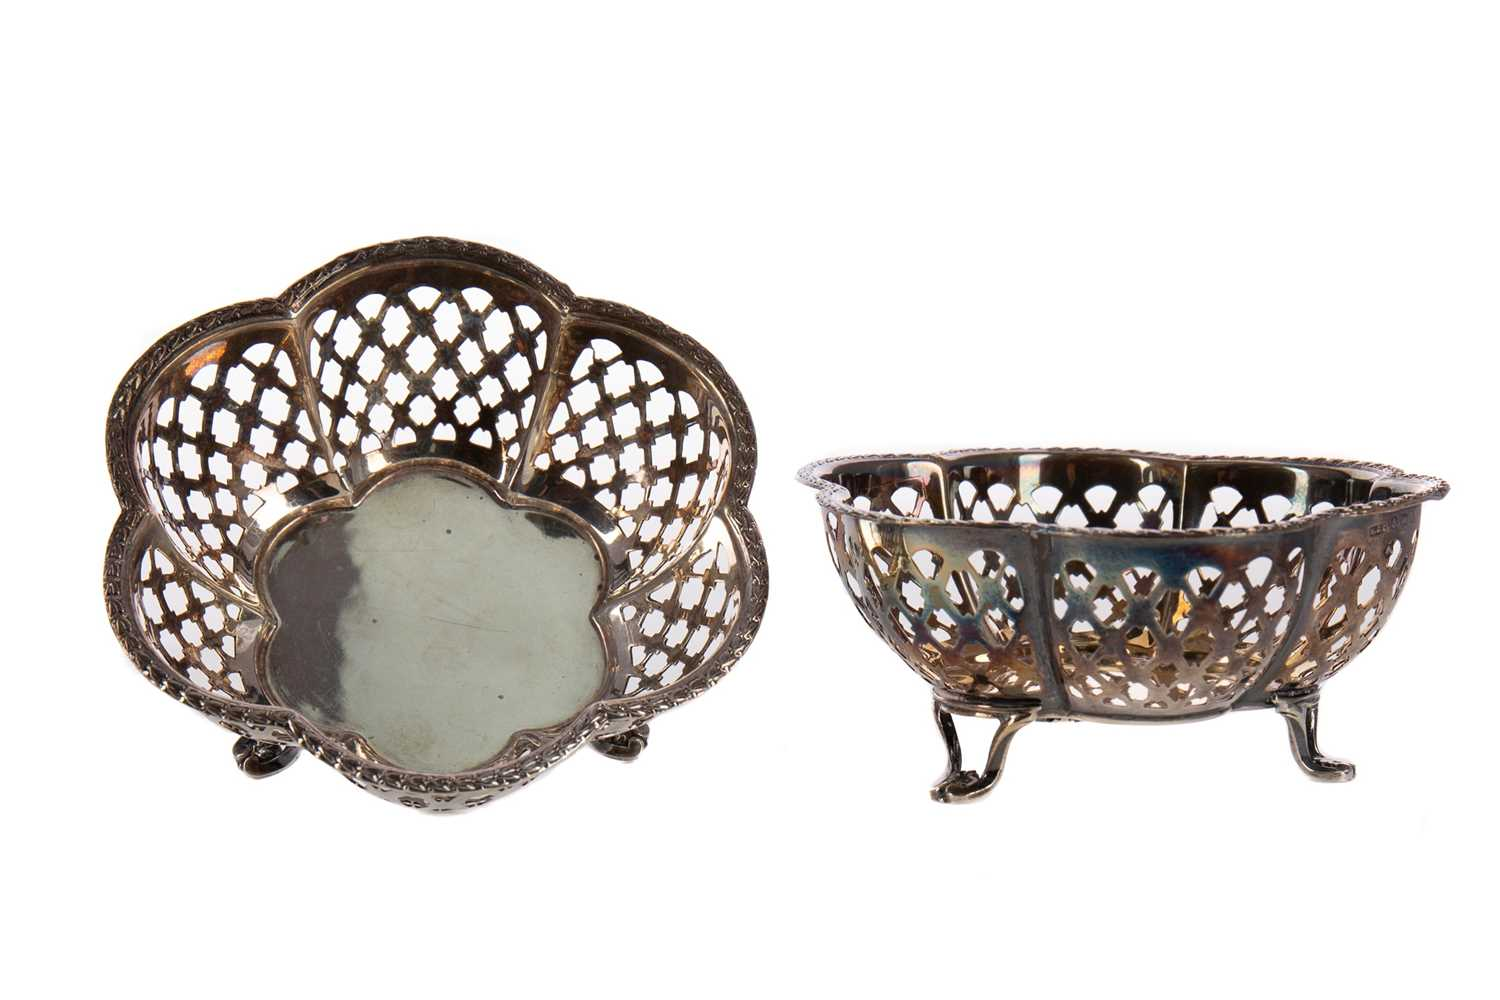 Lot 408 - A PAIR OF GEORGE V SILVER BONBON DISHES AND AN ASHTRAY